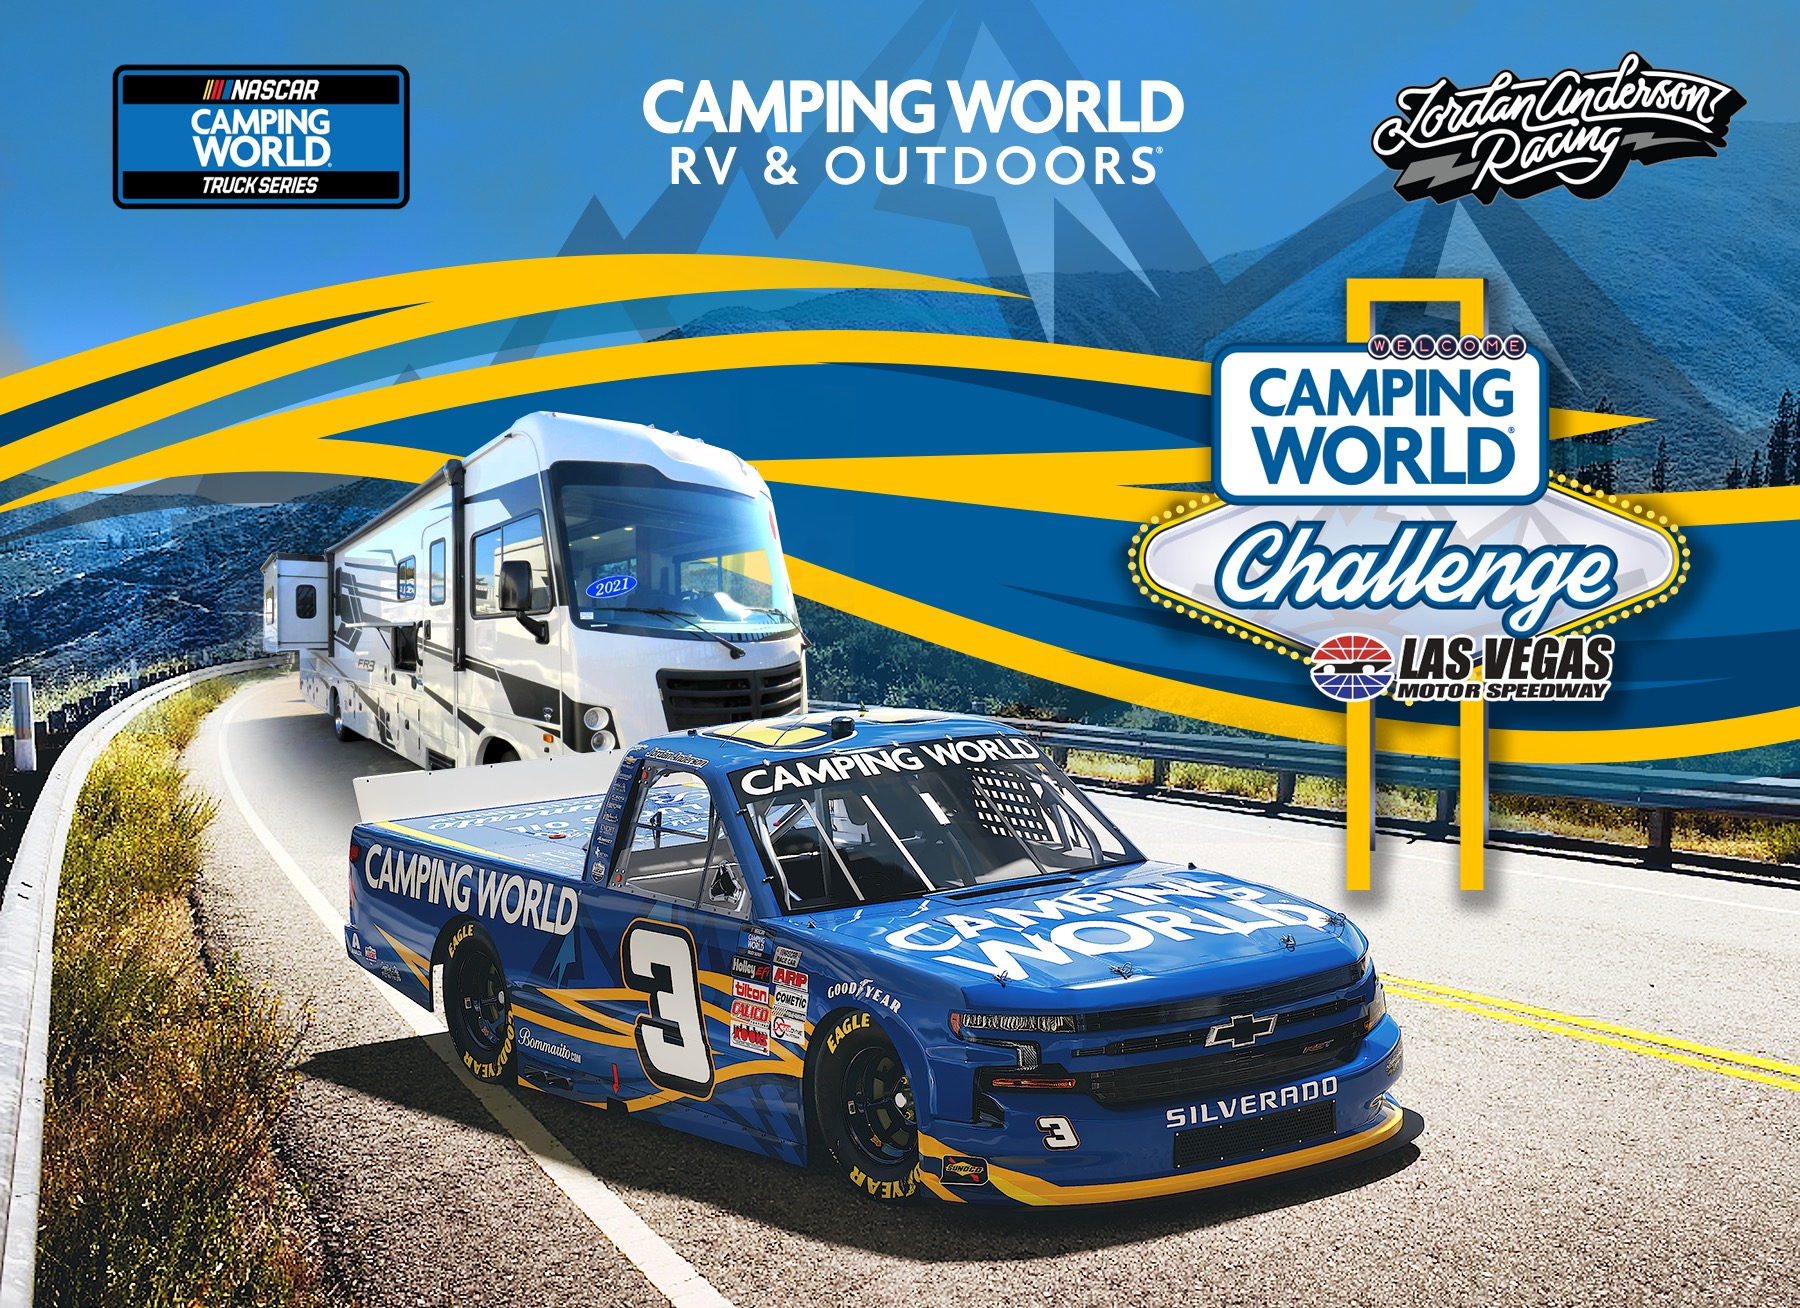 Camping World to Partner with Jordan Anderson Racing for Las Vegas Truck Race in Camping World Challenge